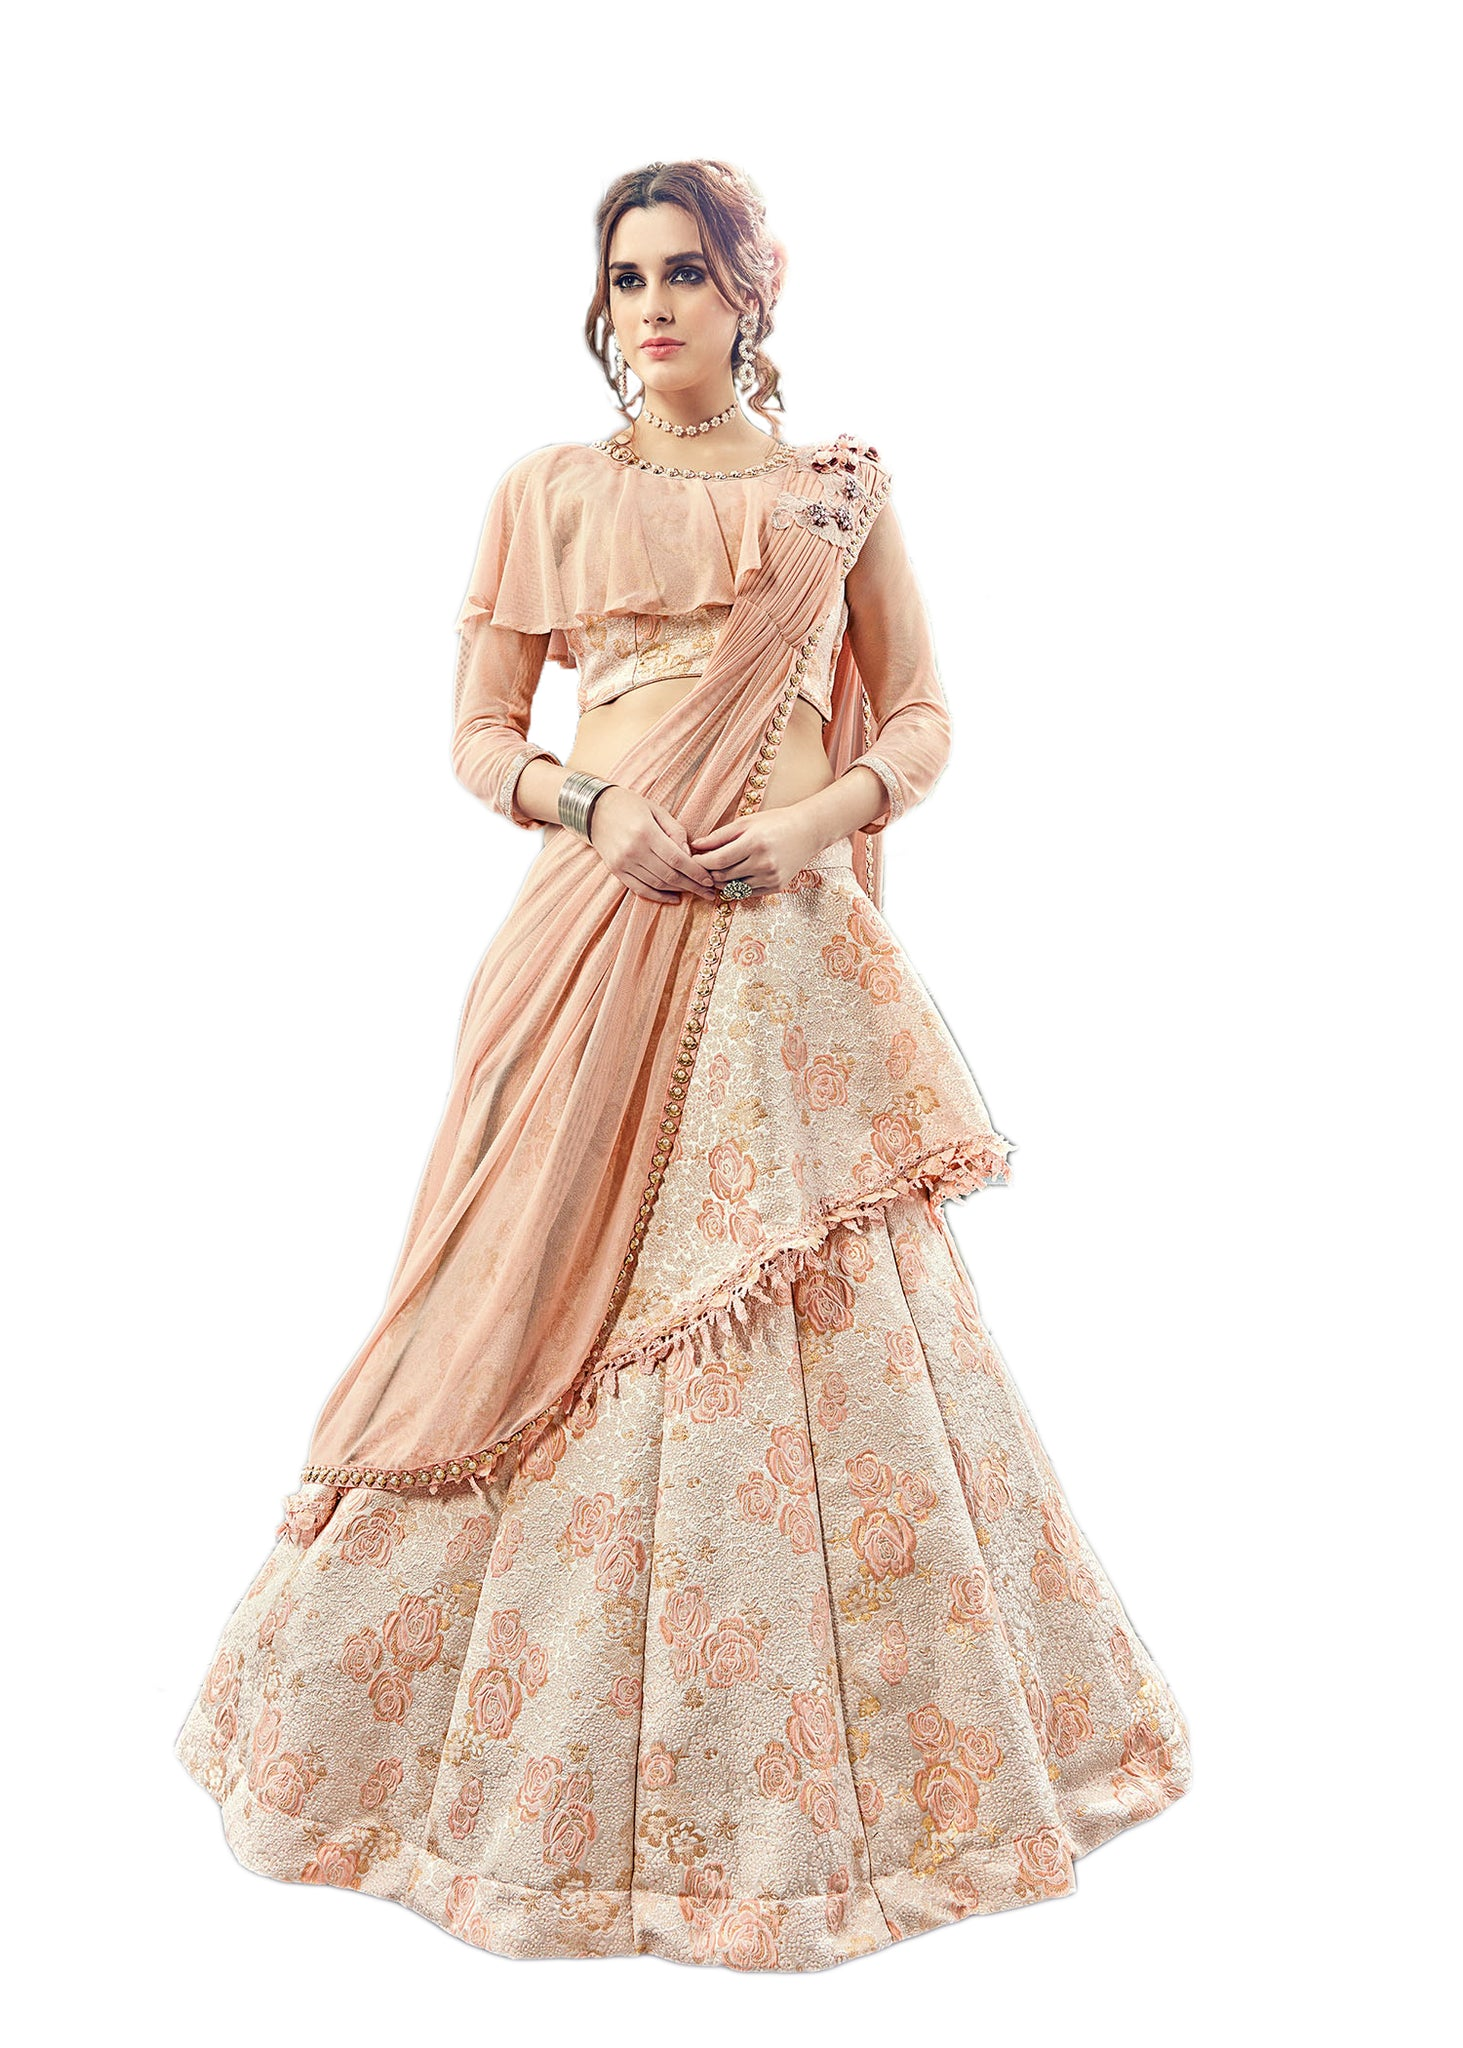 acfcec9904de7 Top 6 Designer Indo Western Lehenga Choli Ideas Will Give You ...